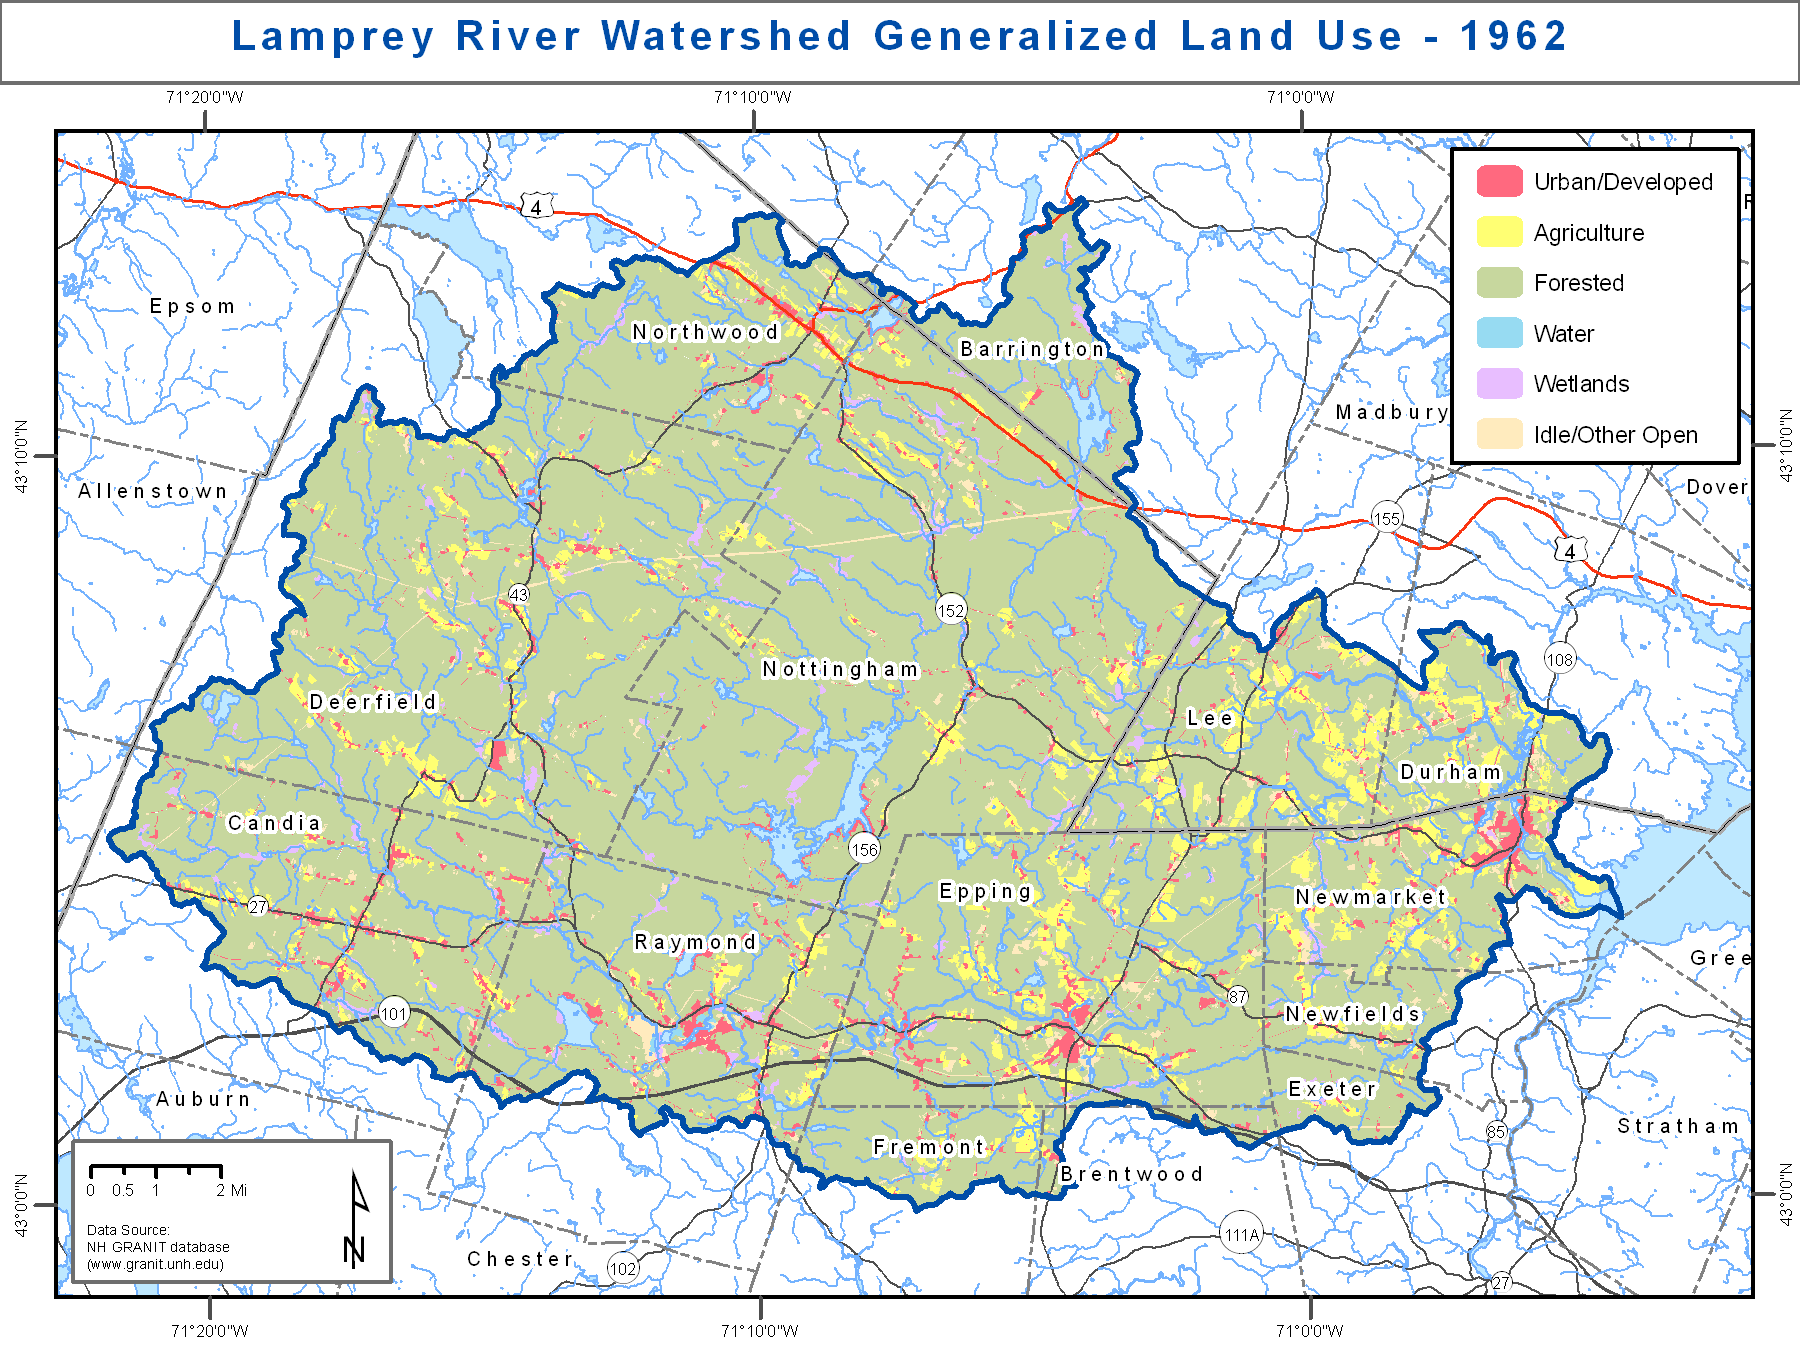 Maps Resources Lamprey River 100 Year Flood Risk Project